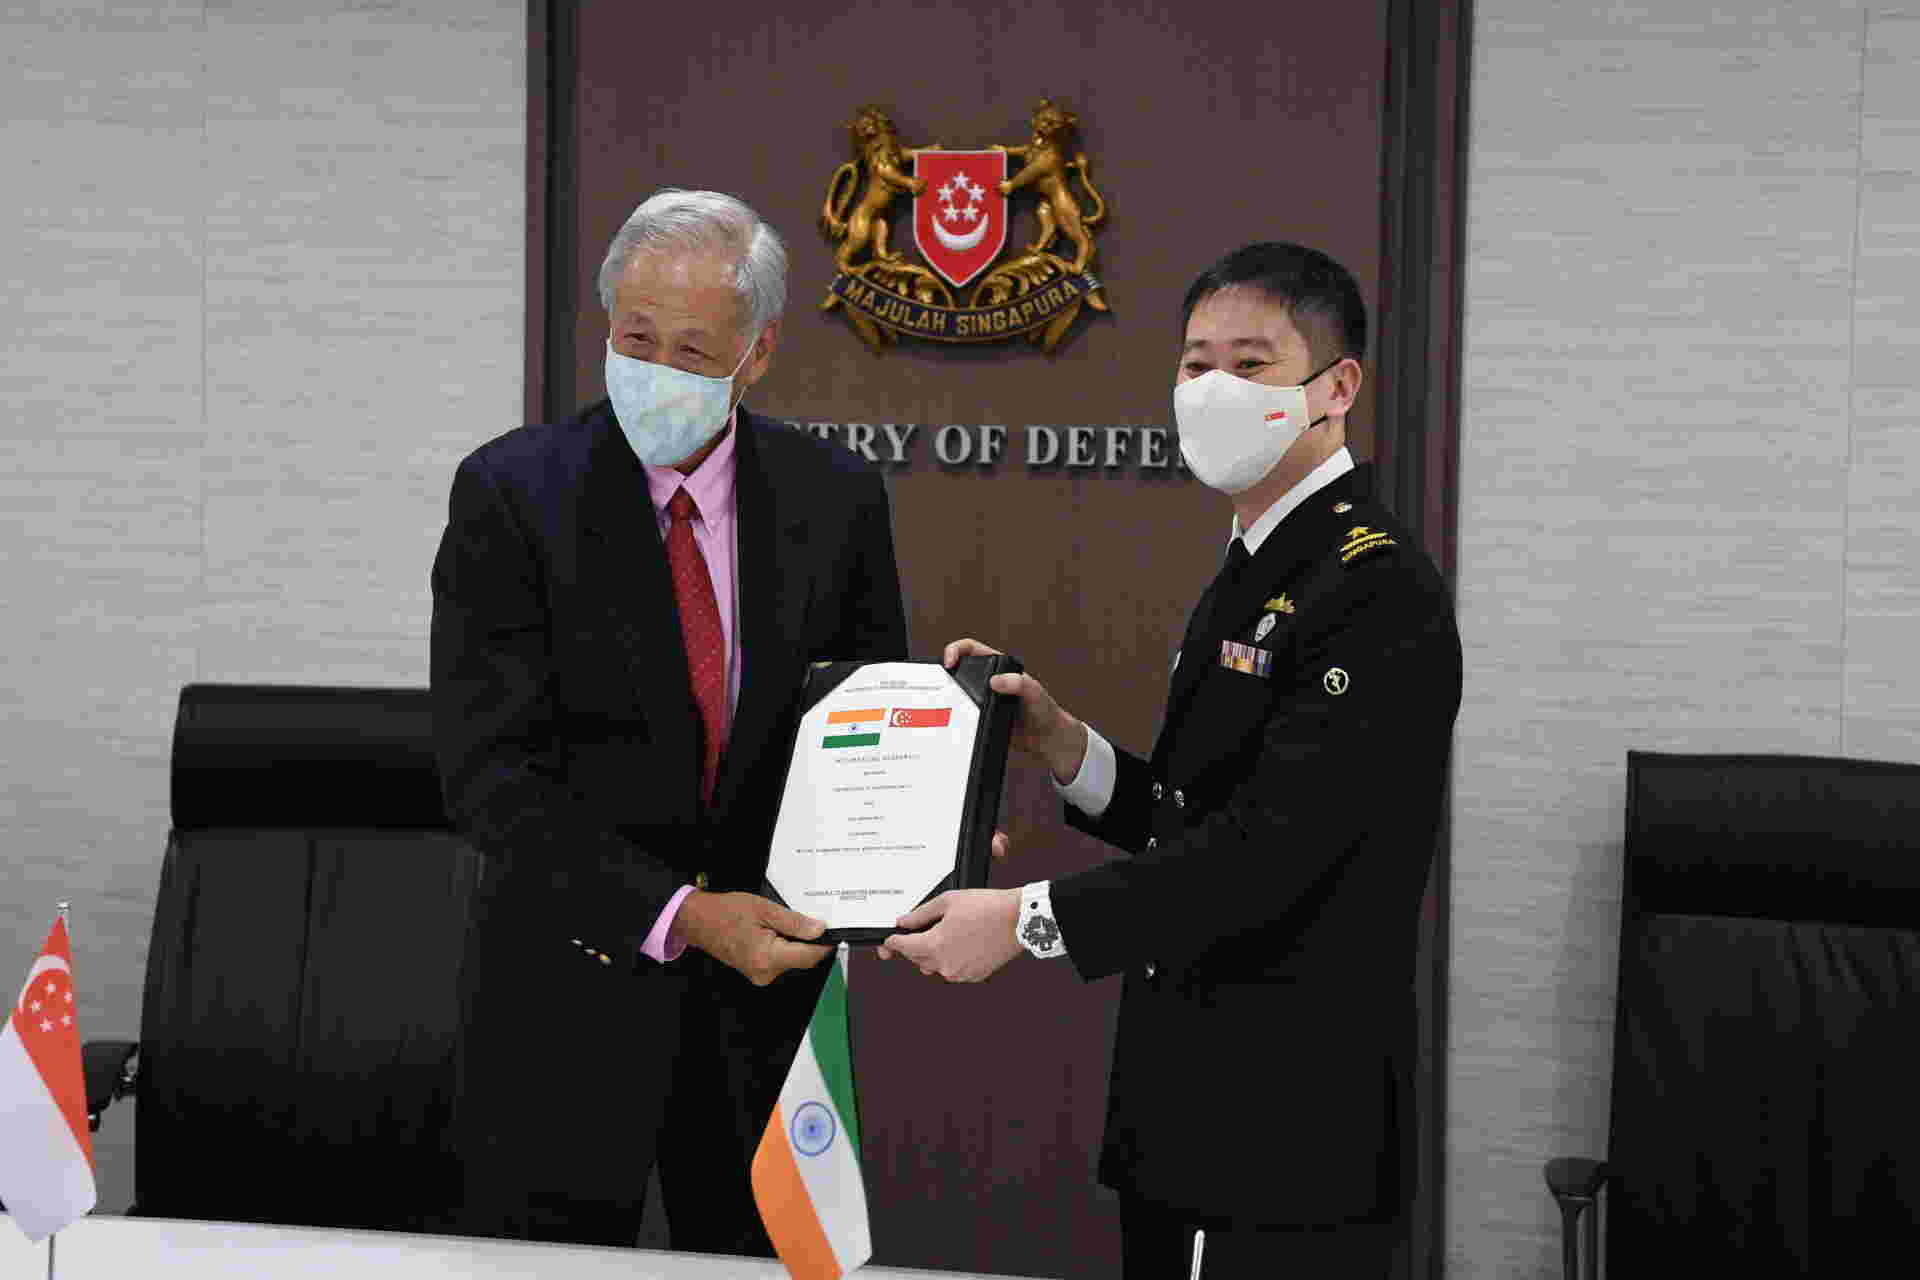 Singapore Defence Minister Dr Ng Eng Hen (Image courtesy: Ministry of Defence, Singapore)